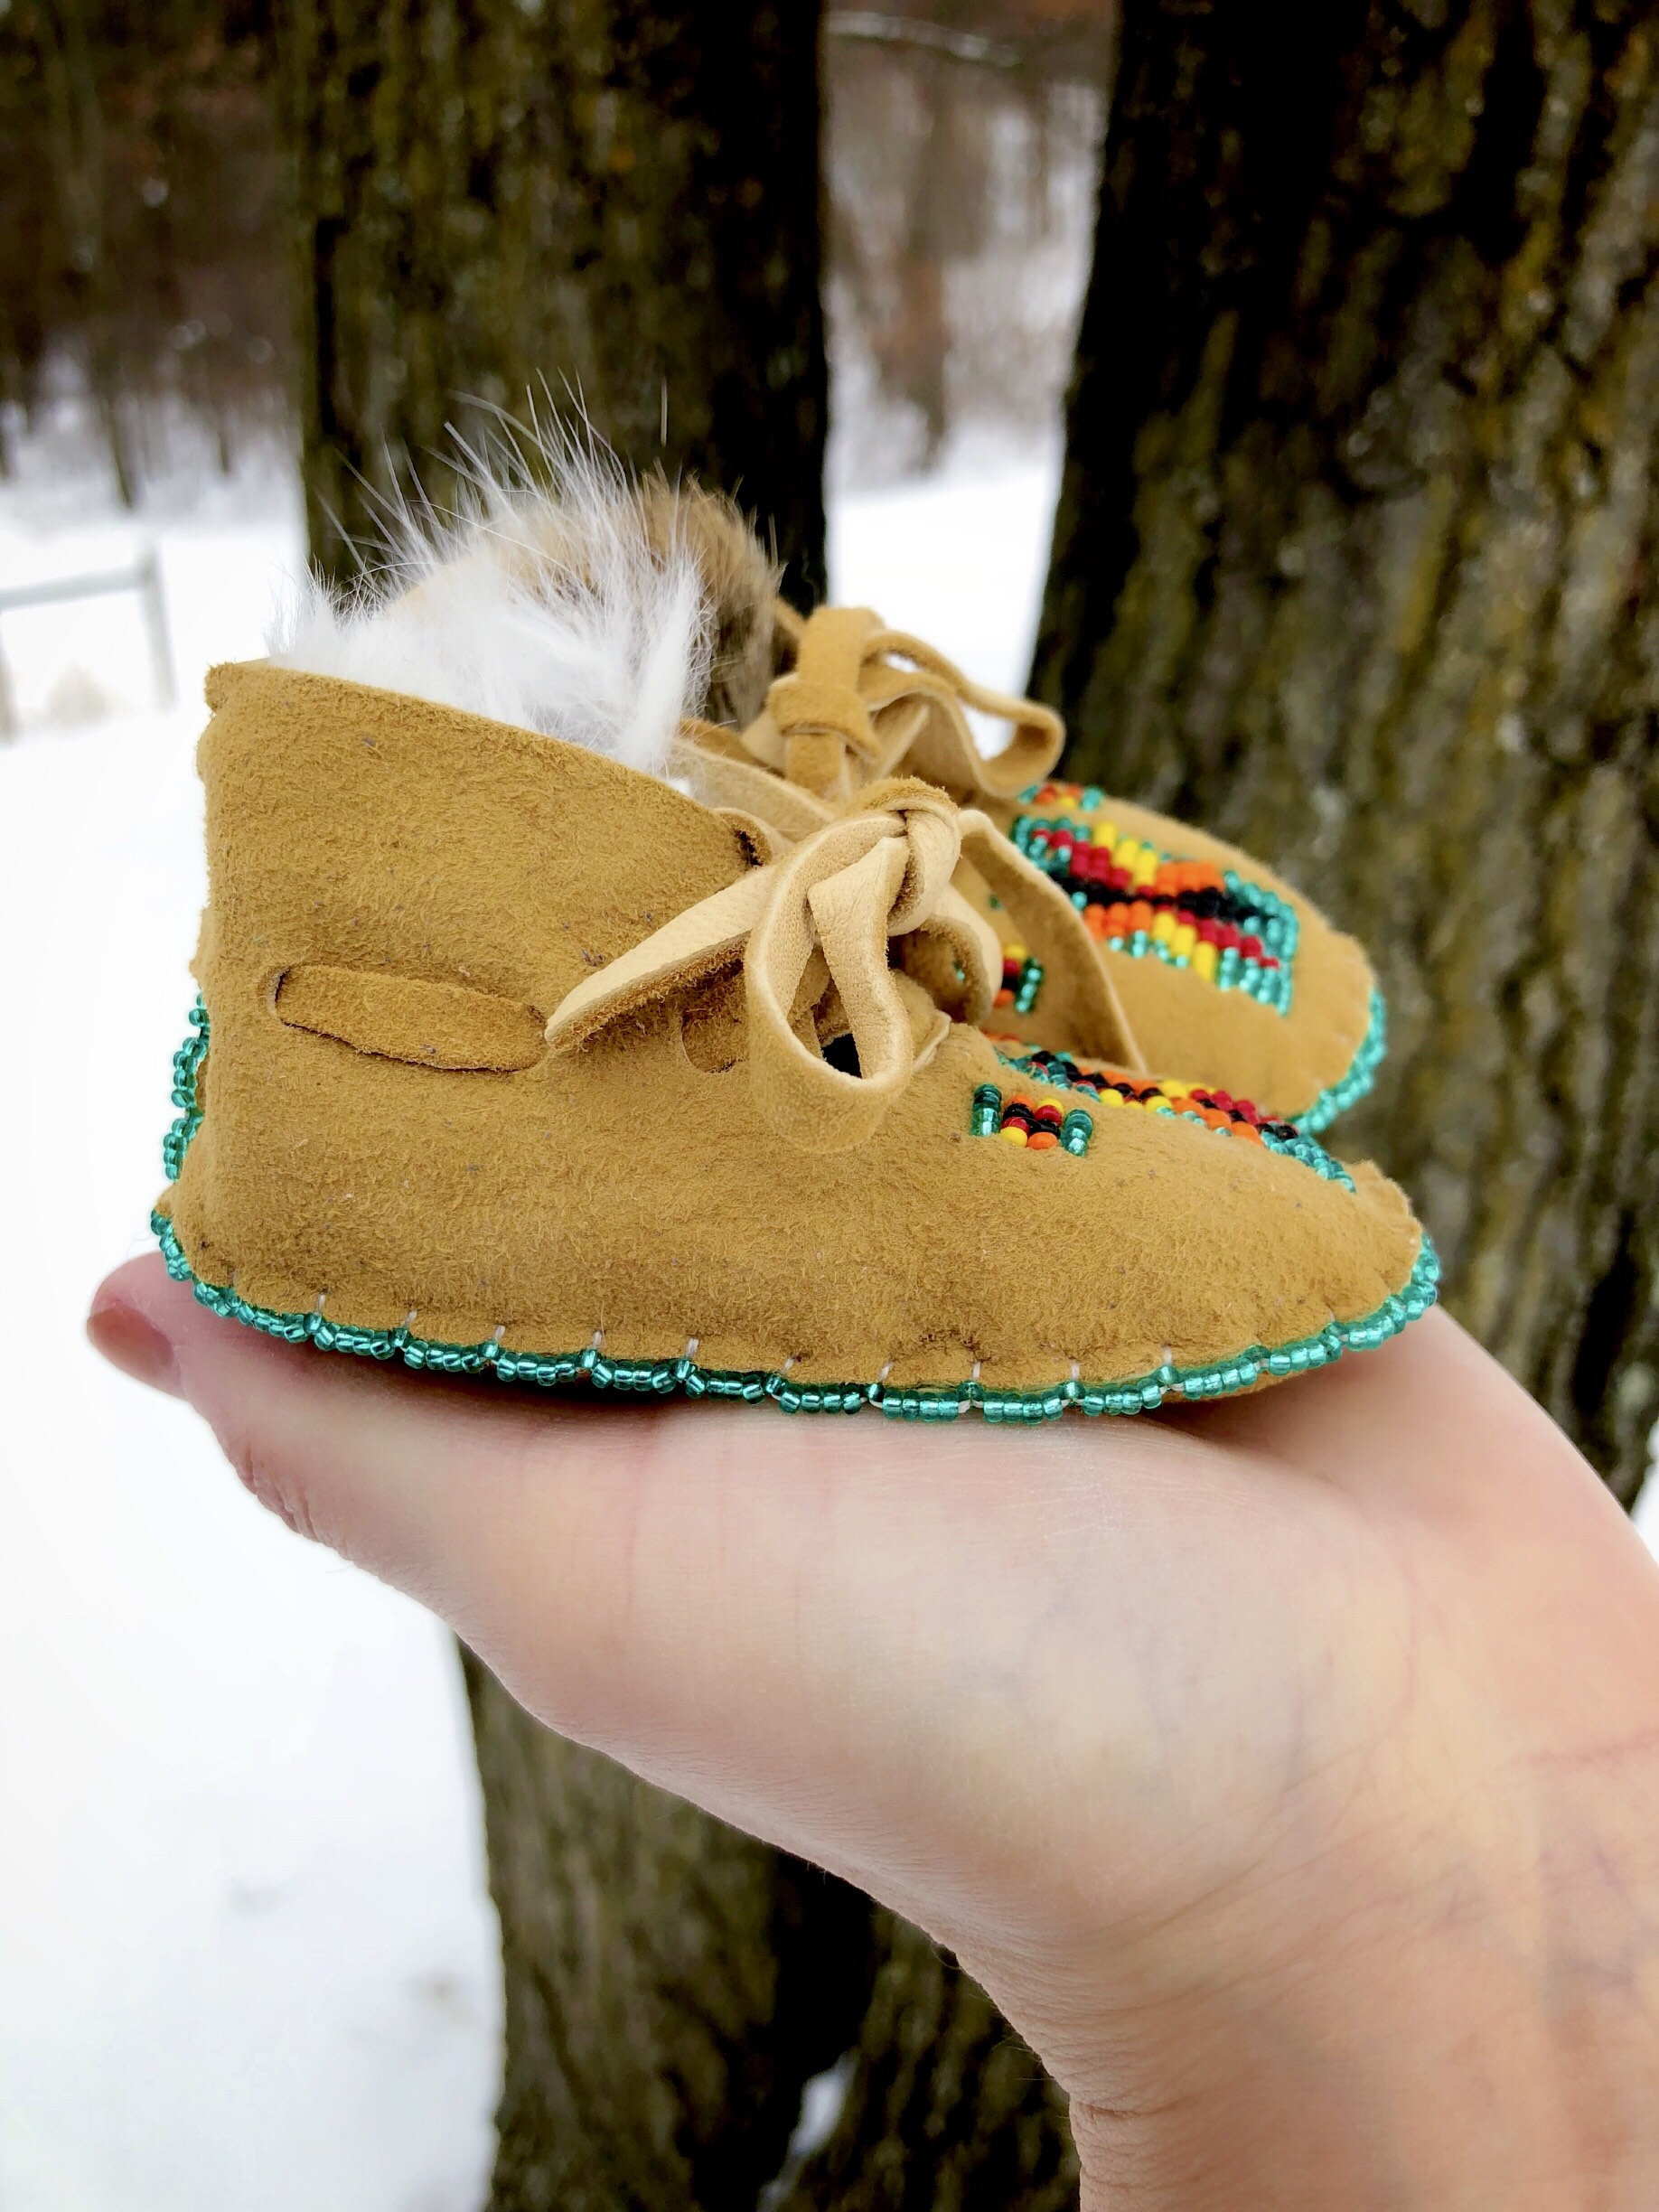 Baby Moccasins - Beaded Moccasins